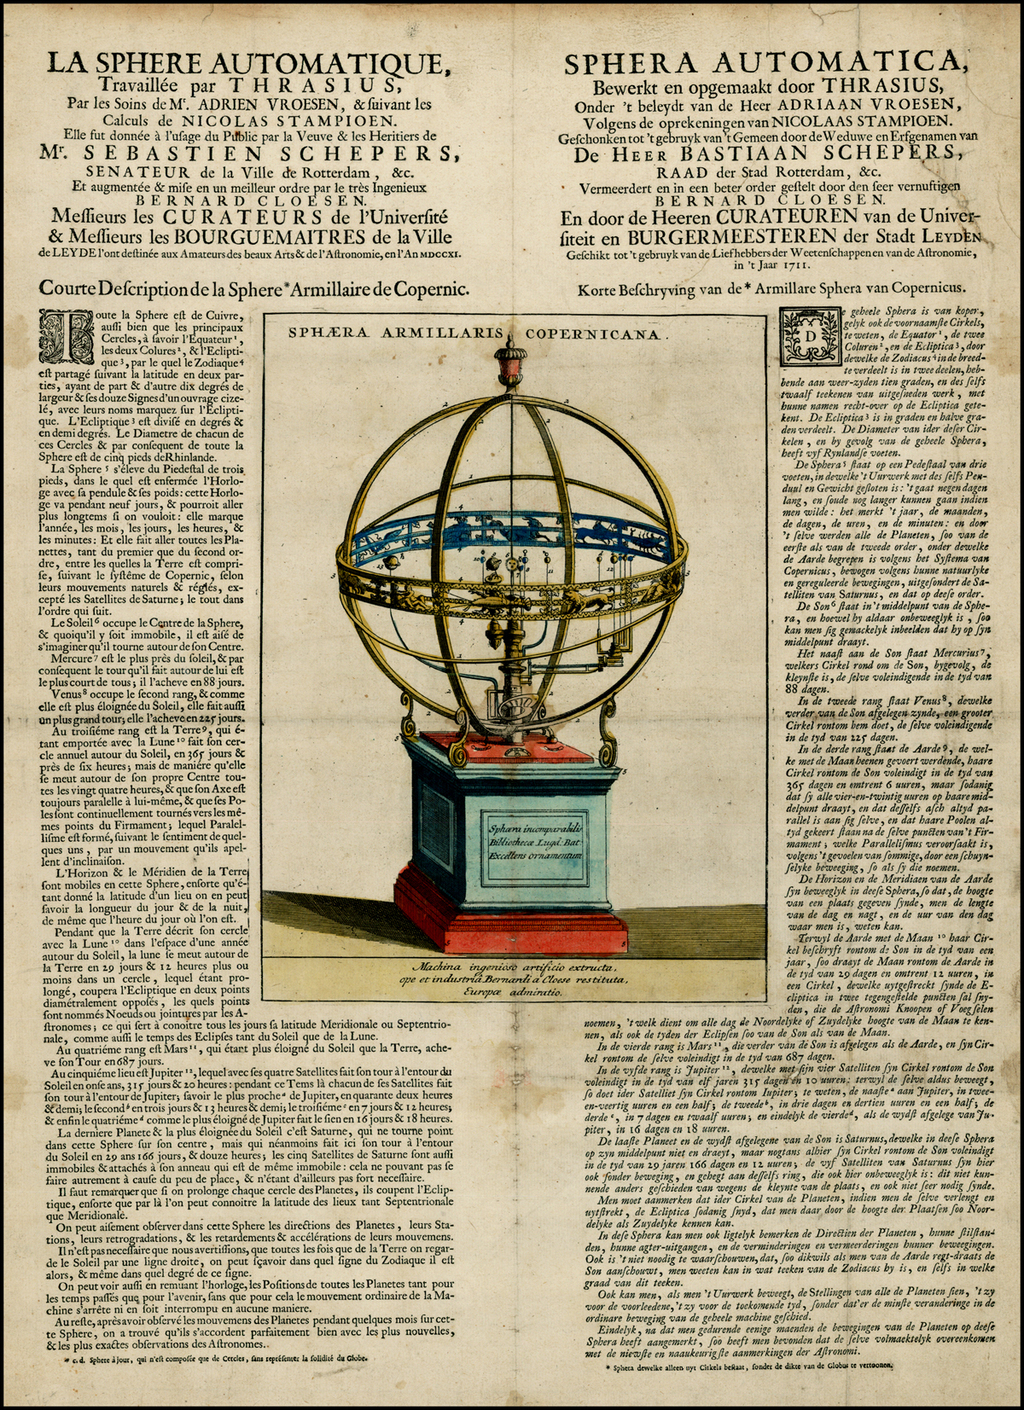 Sphaera Armillaris Copernicana  [Rare Broadside of the Leiden Sphere] By Pieter van der Aa